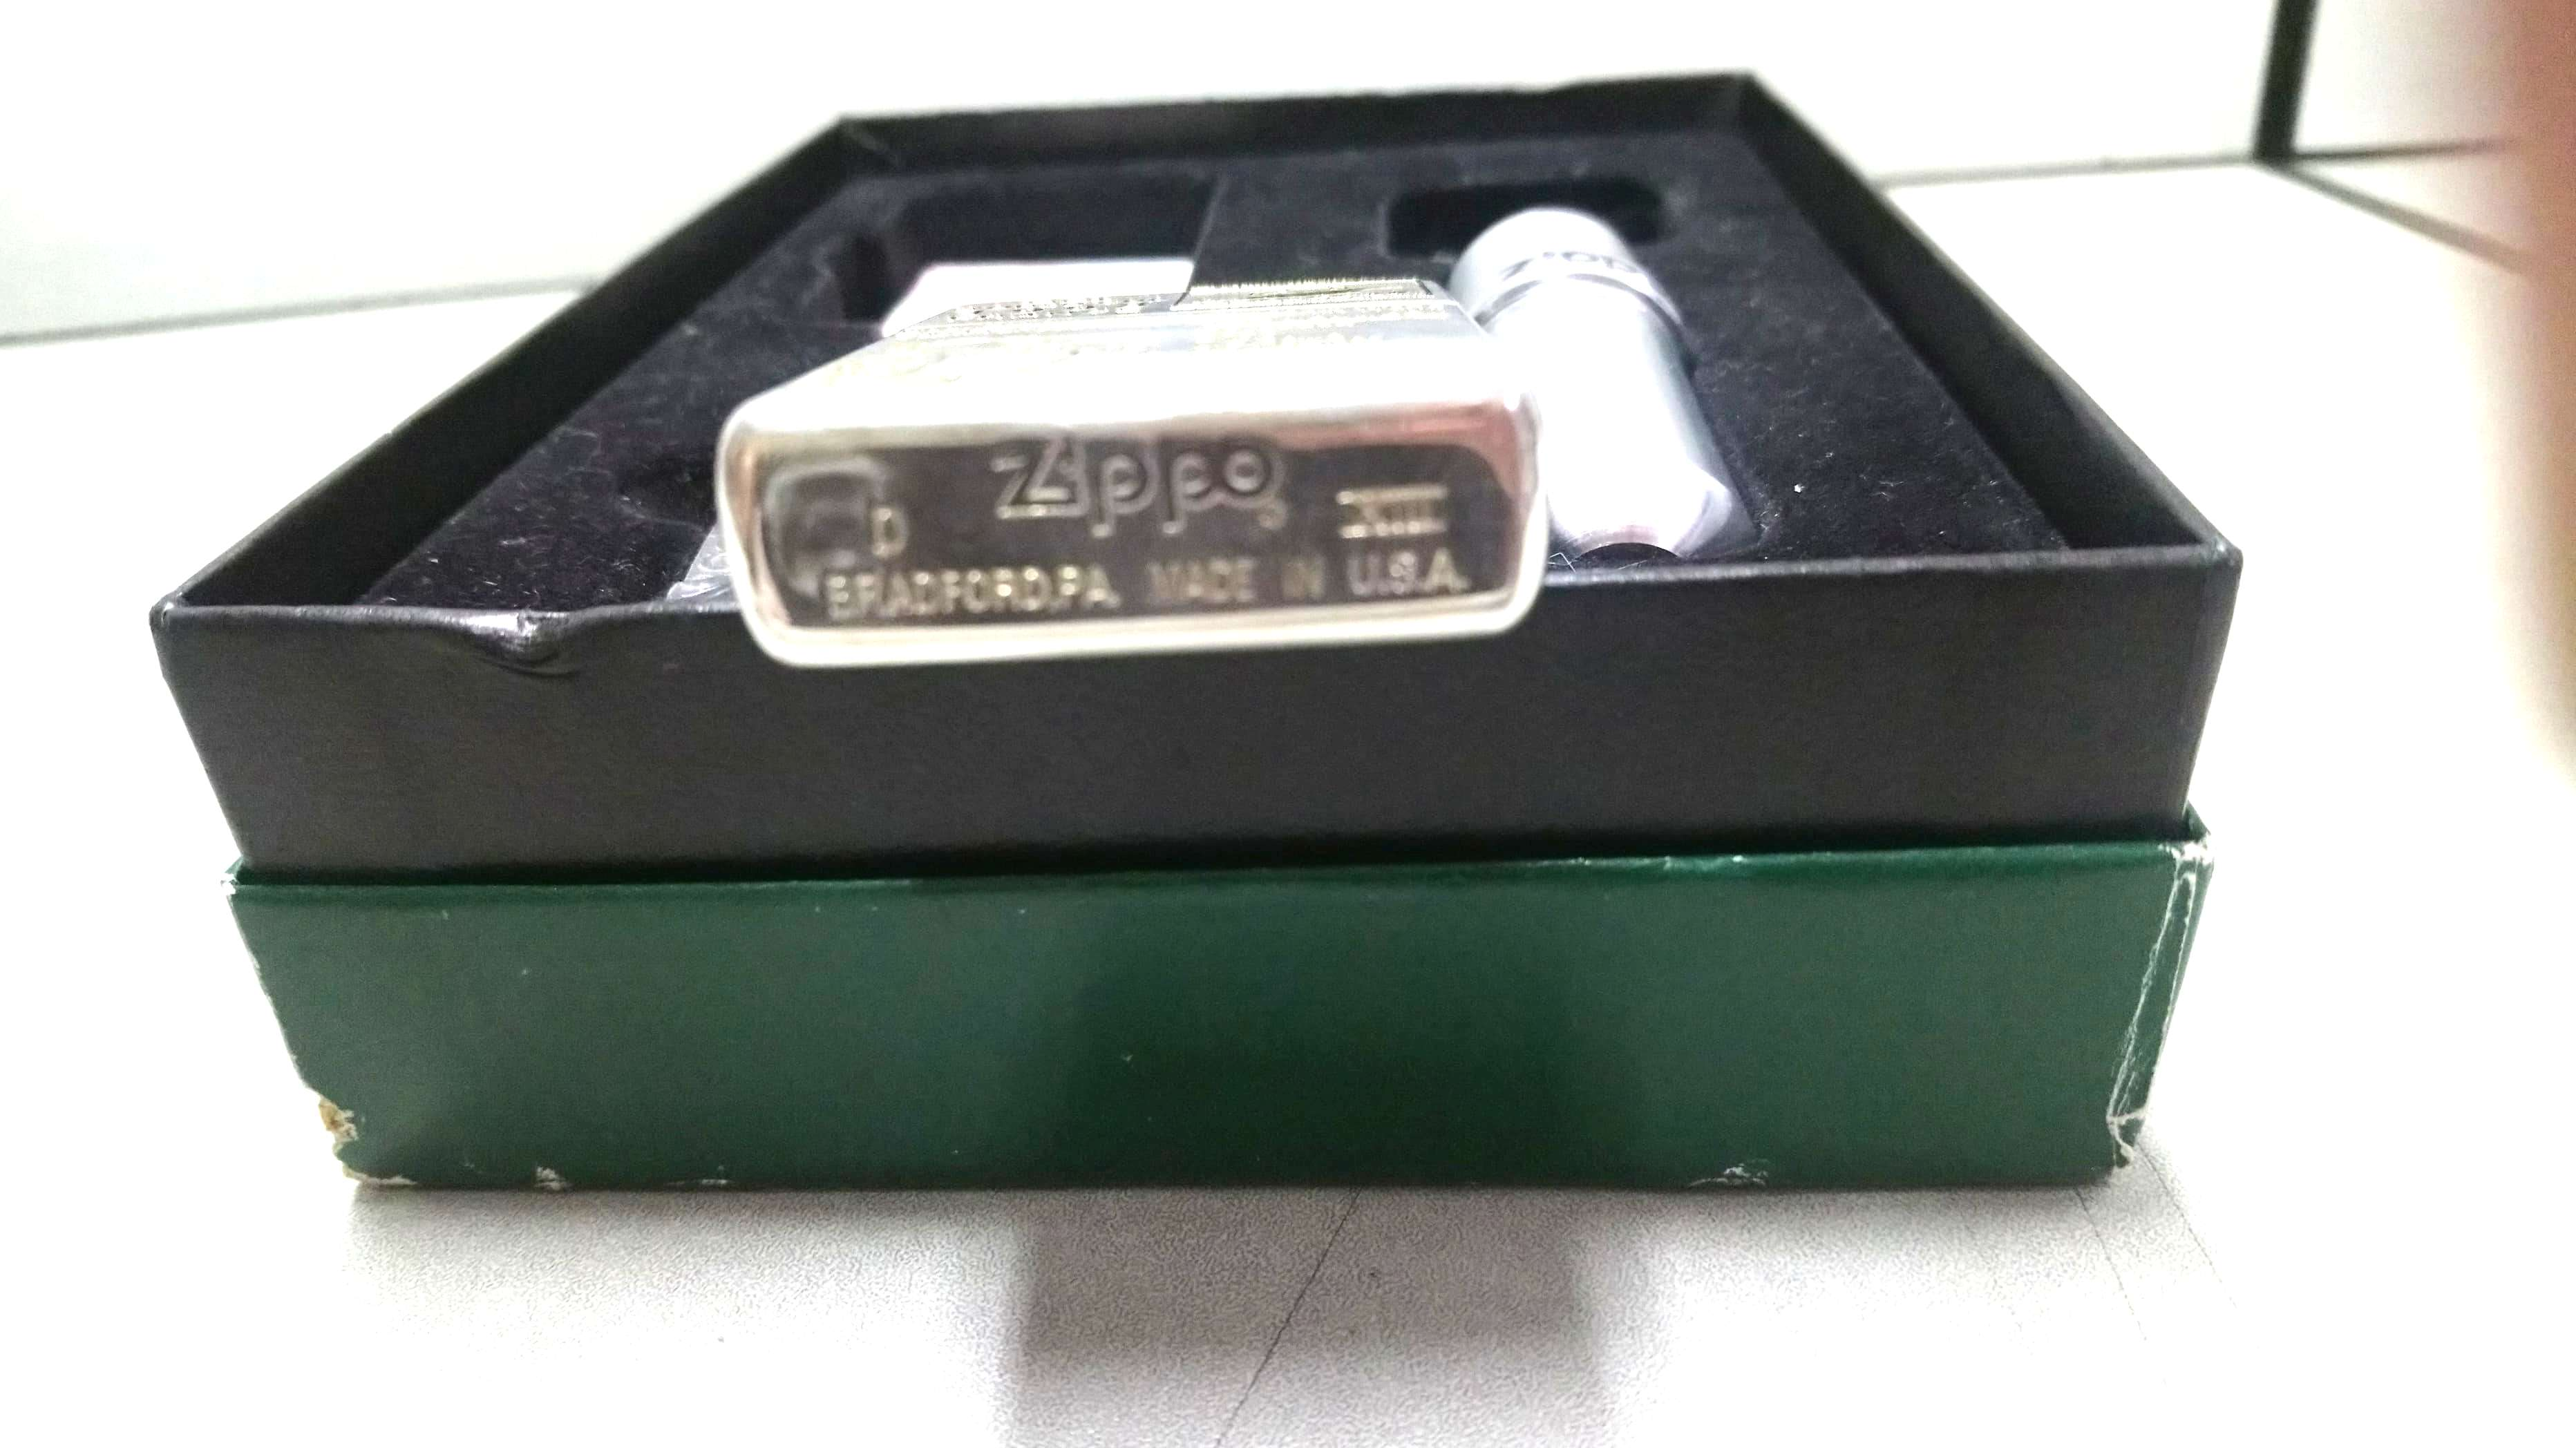 Bo Zippo FiFa Word Cup 1998 ma bac khac vang 18k Limited Z632 4